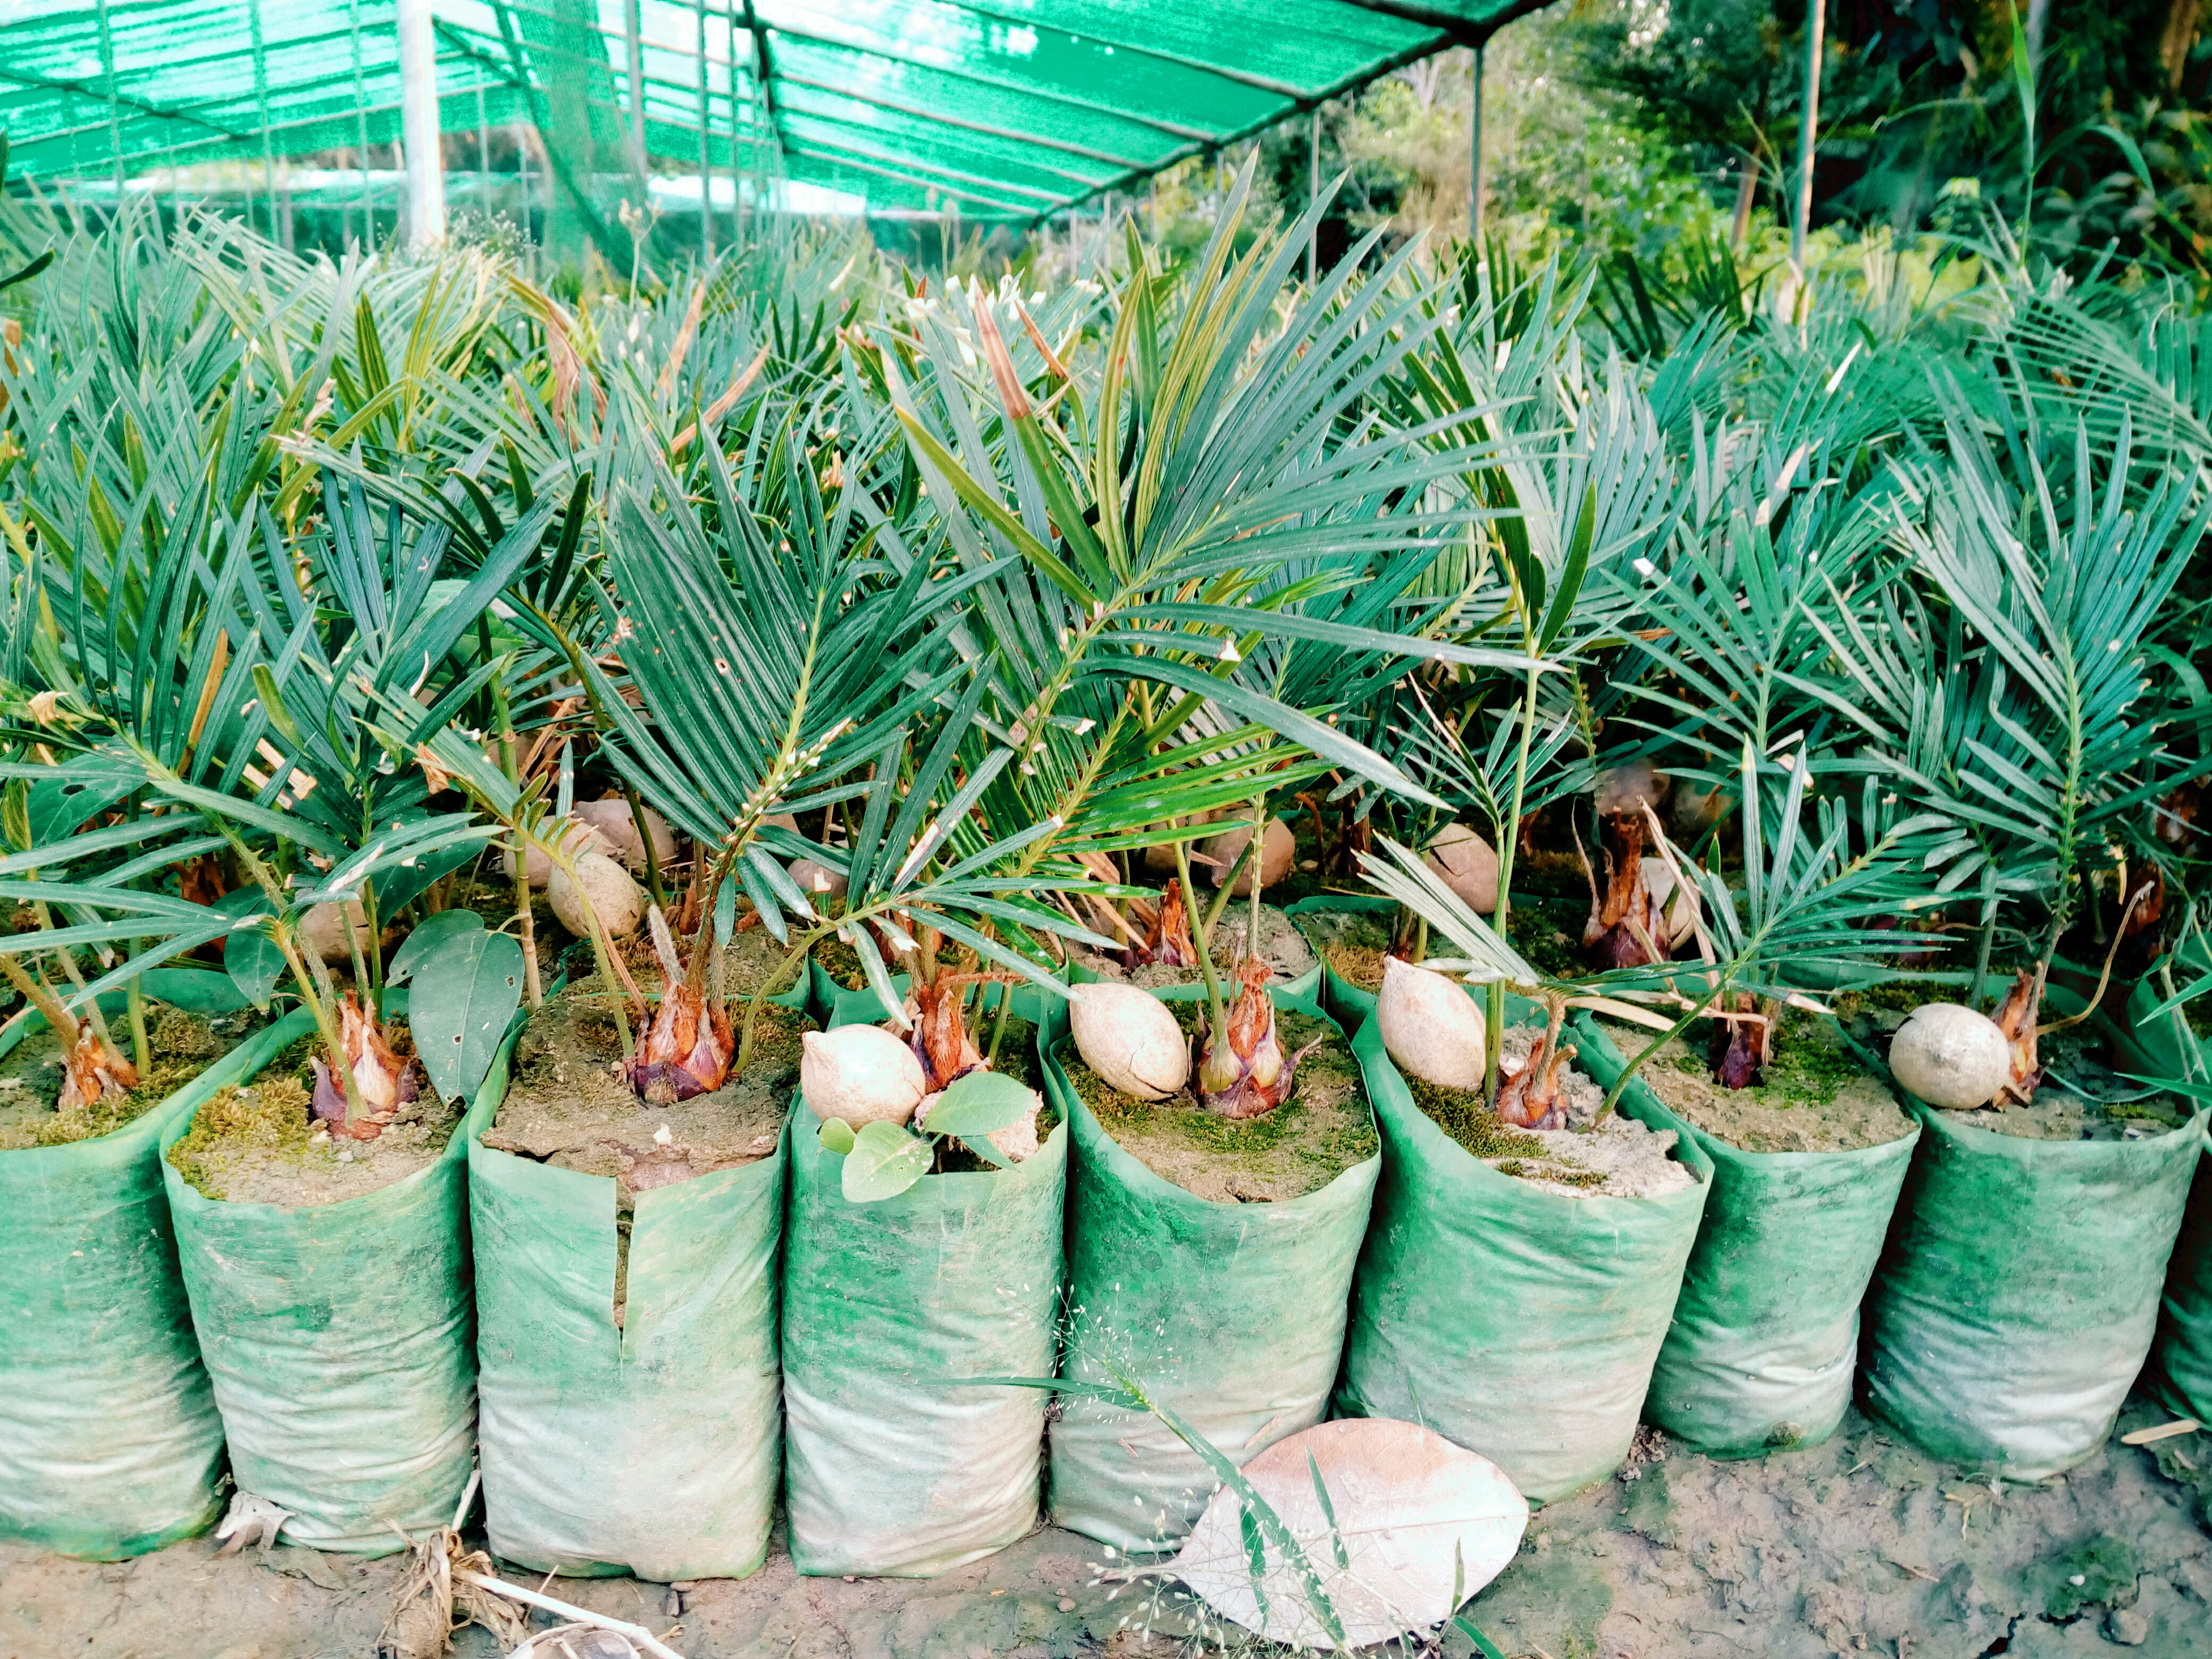 kANGI PALM SEEDLINGS